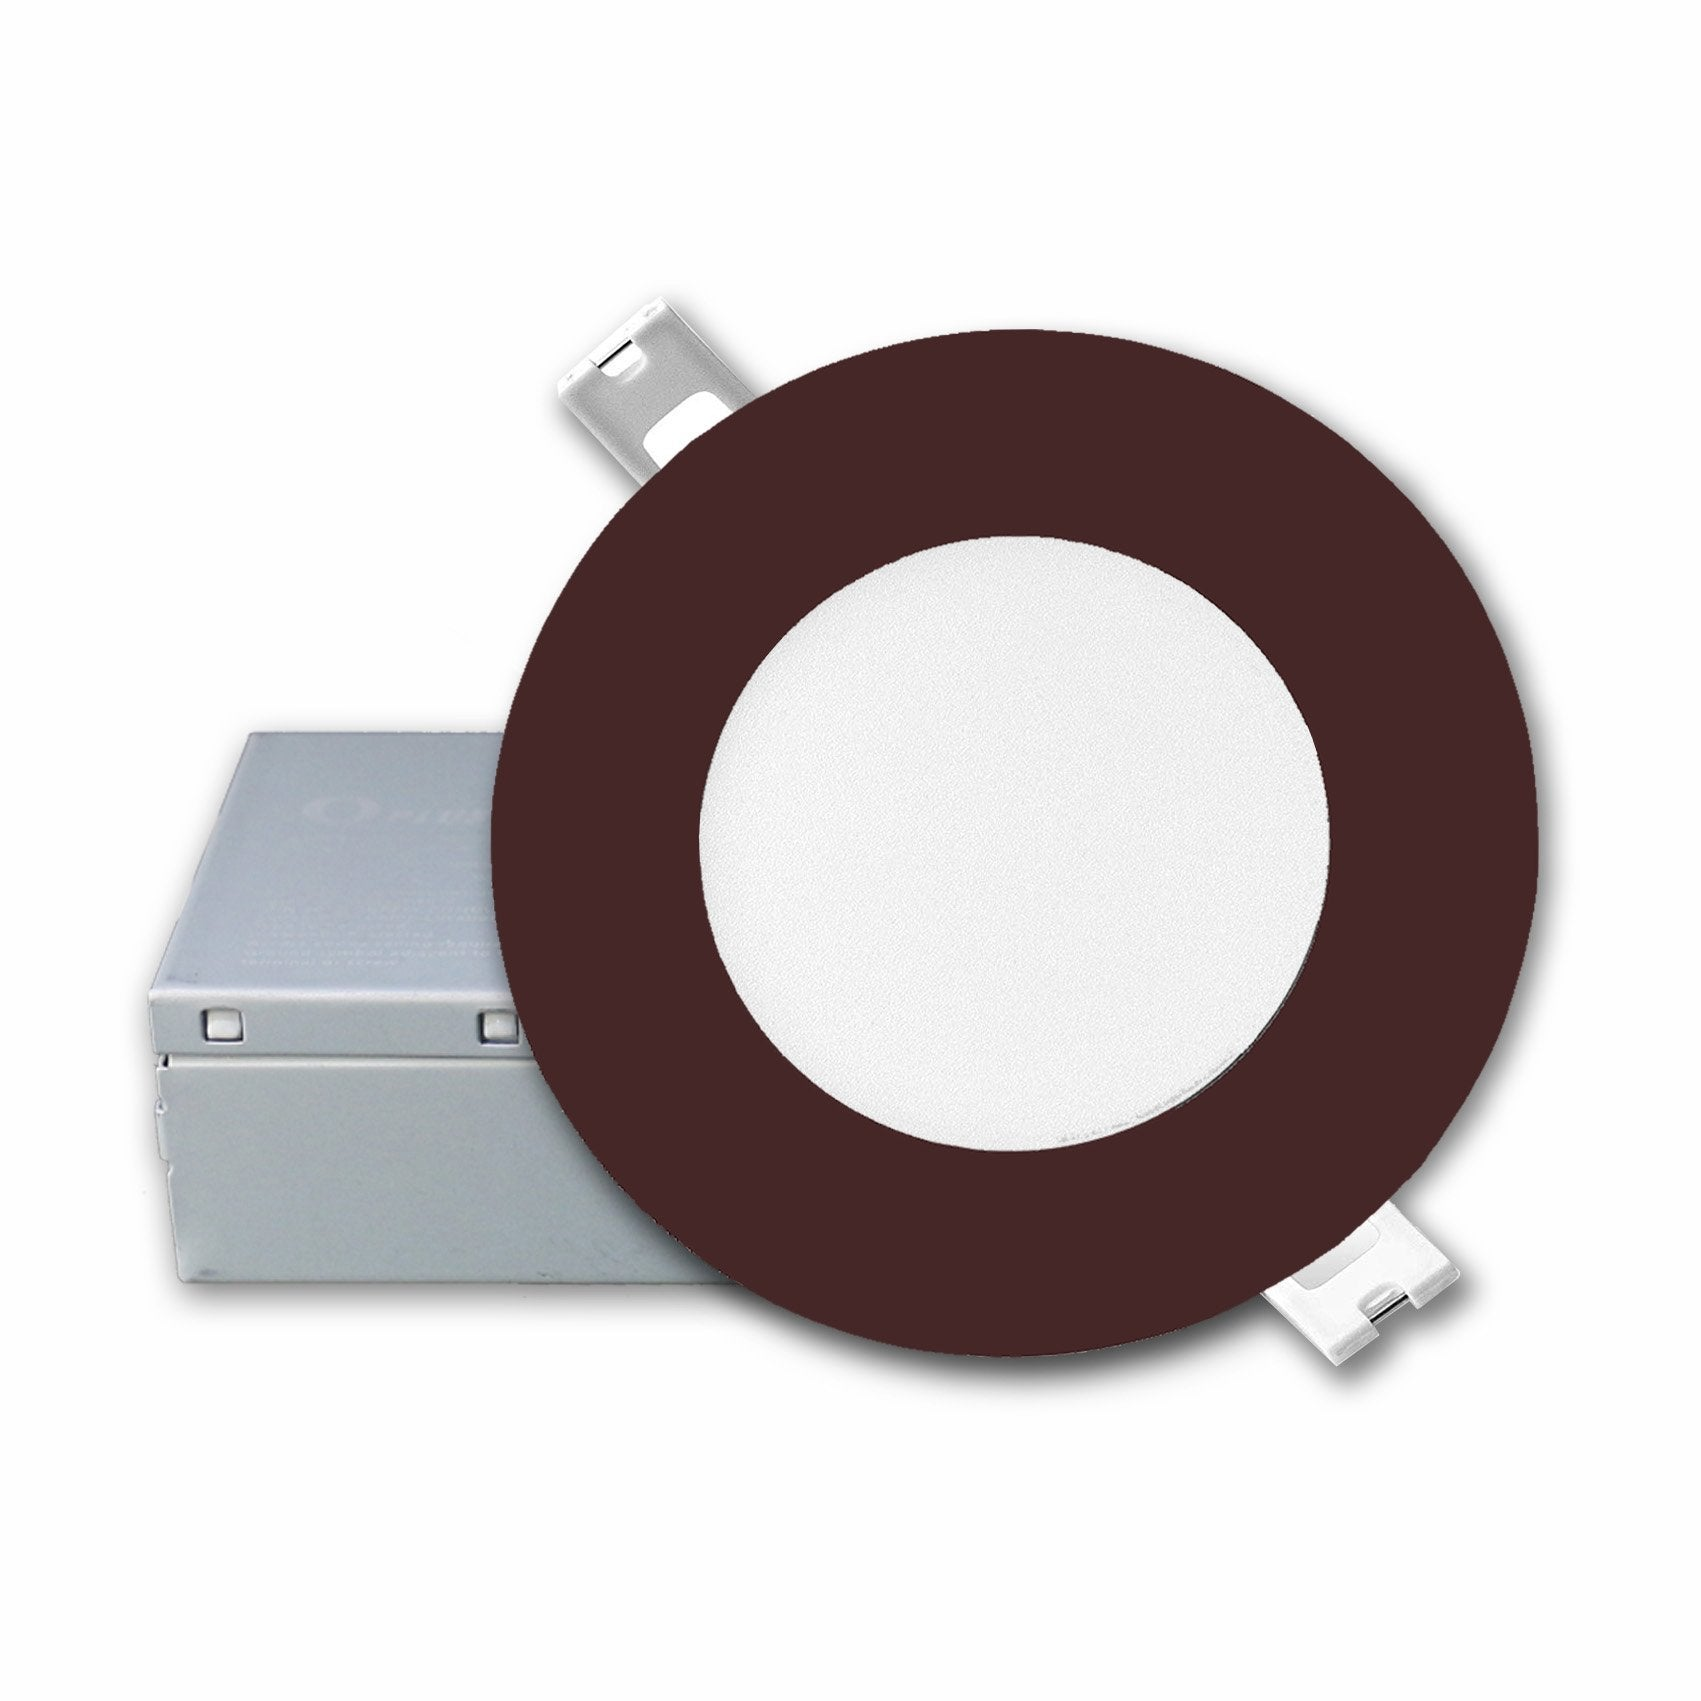 QPlus 4 Inch Trim Ring for Pot Light - Bronze Finish - QPlus Home - Brighten Your Life